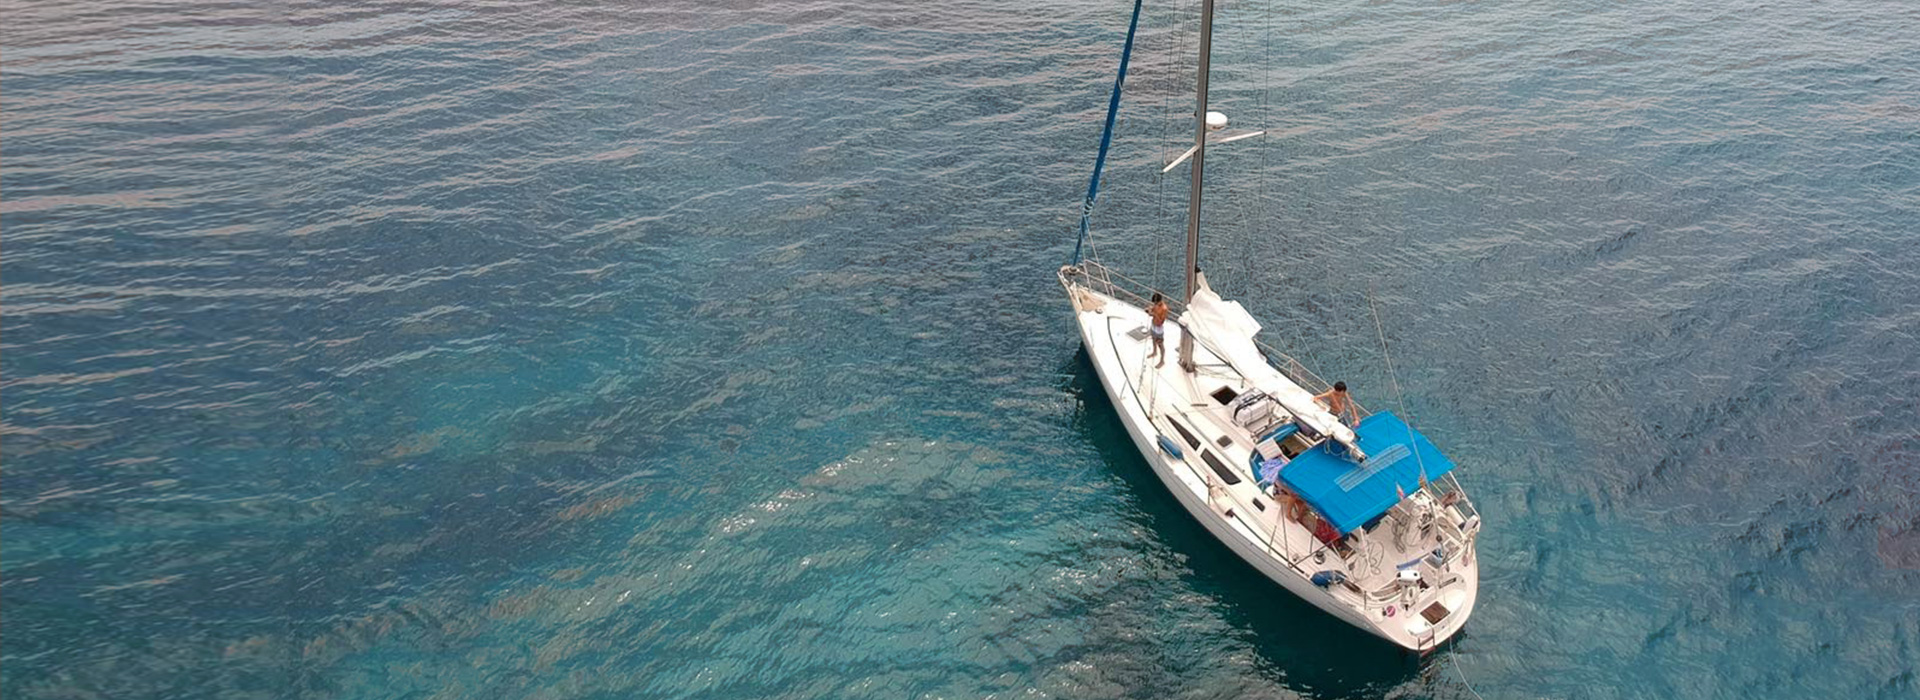 Sailing experience in Costa Brava